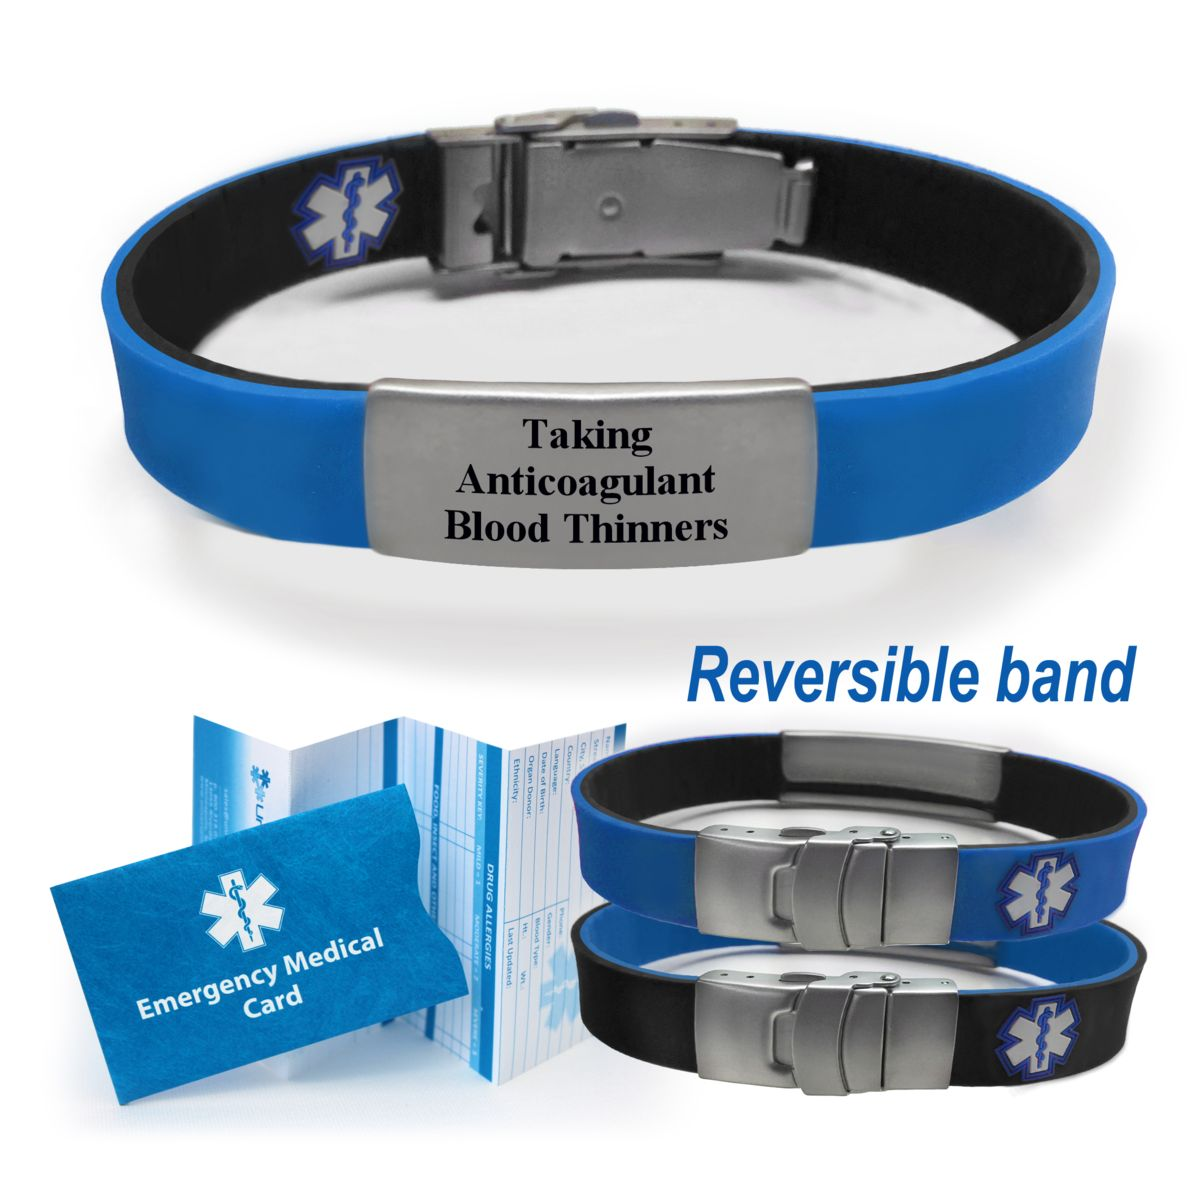 Universal Medical Data Taking Anticoagulant Blood Thinners Sport Slim Reversible Alert Id Bracelet Choose Color